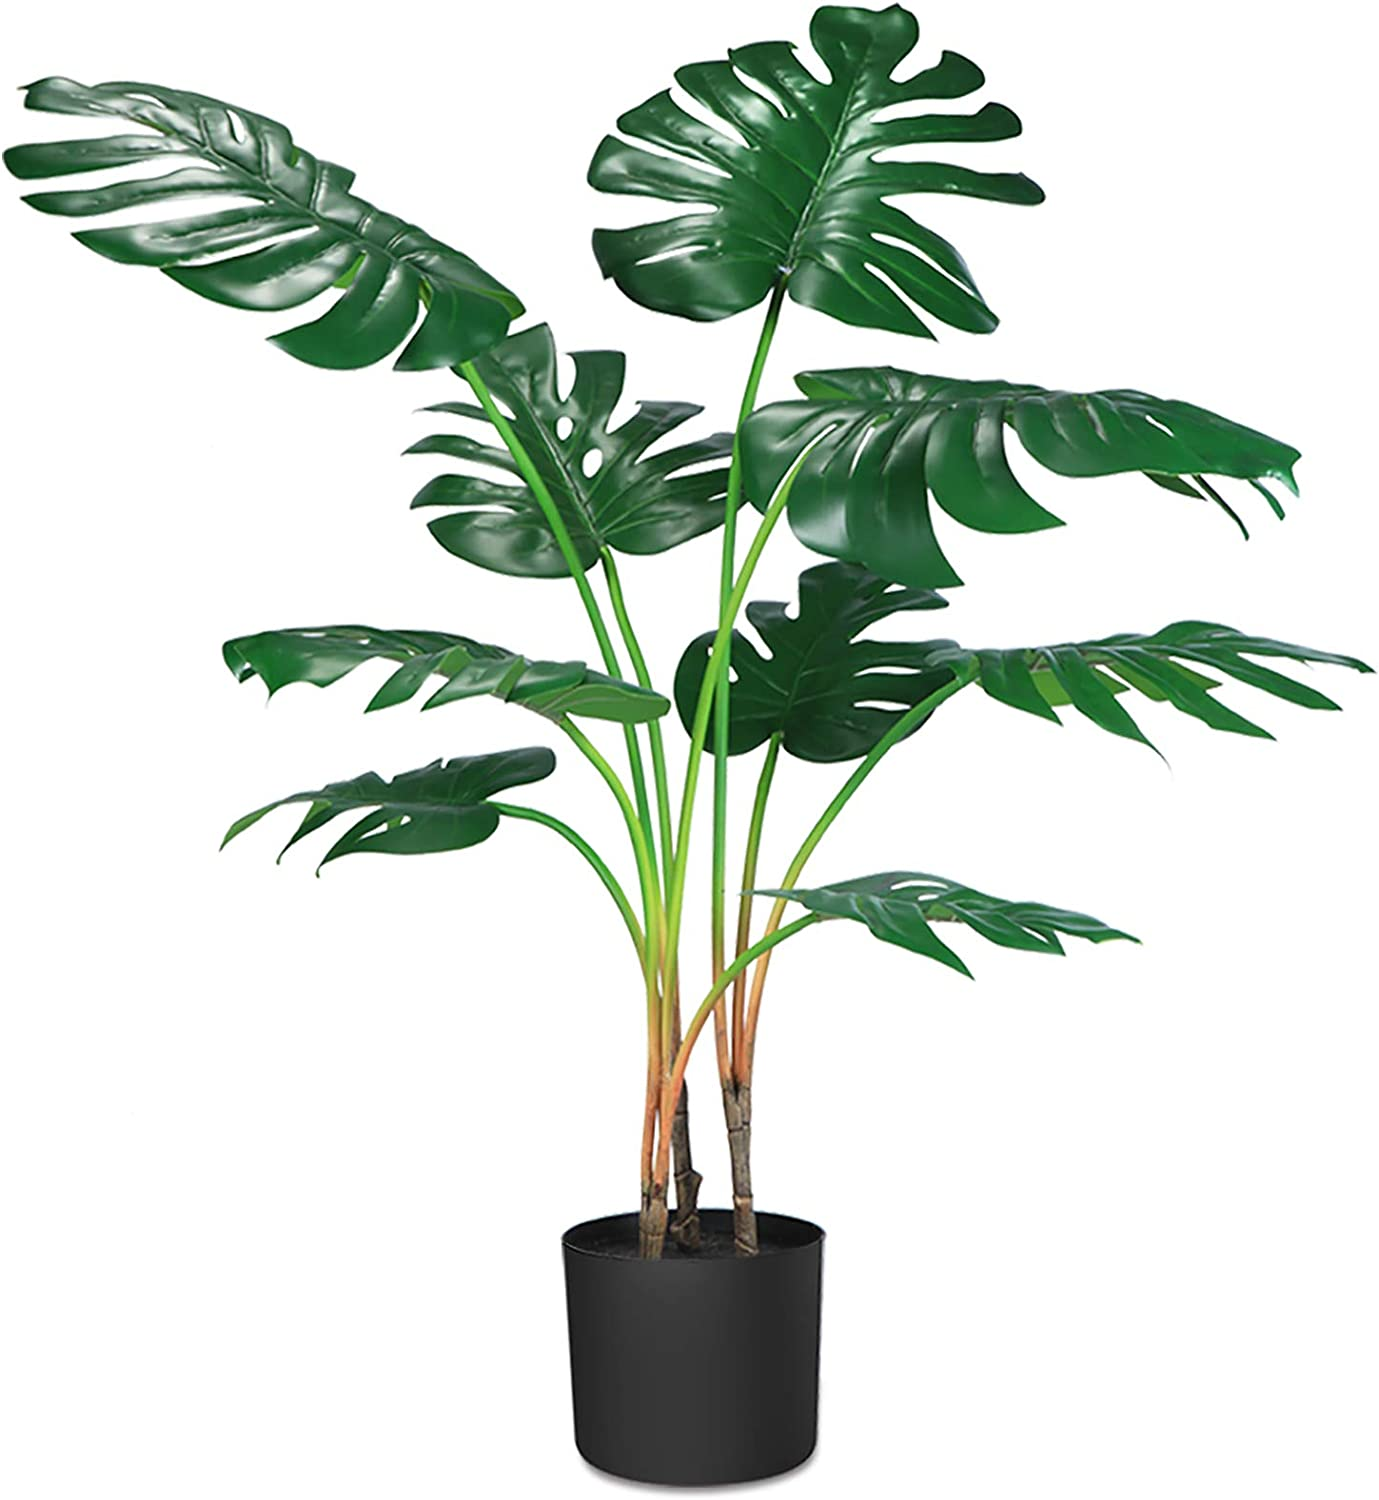 "CROSOFMI Artificial Monstera Deliciosa Plant 37"" Fake Tropical Palm Tree, Perfect Faux Swiss Cheese Plants in Pot for Indoor Outdoor House Home Office Garden Modern Decoration Housewarming Gift,1 Pack"